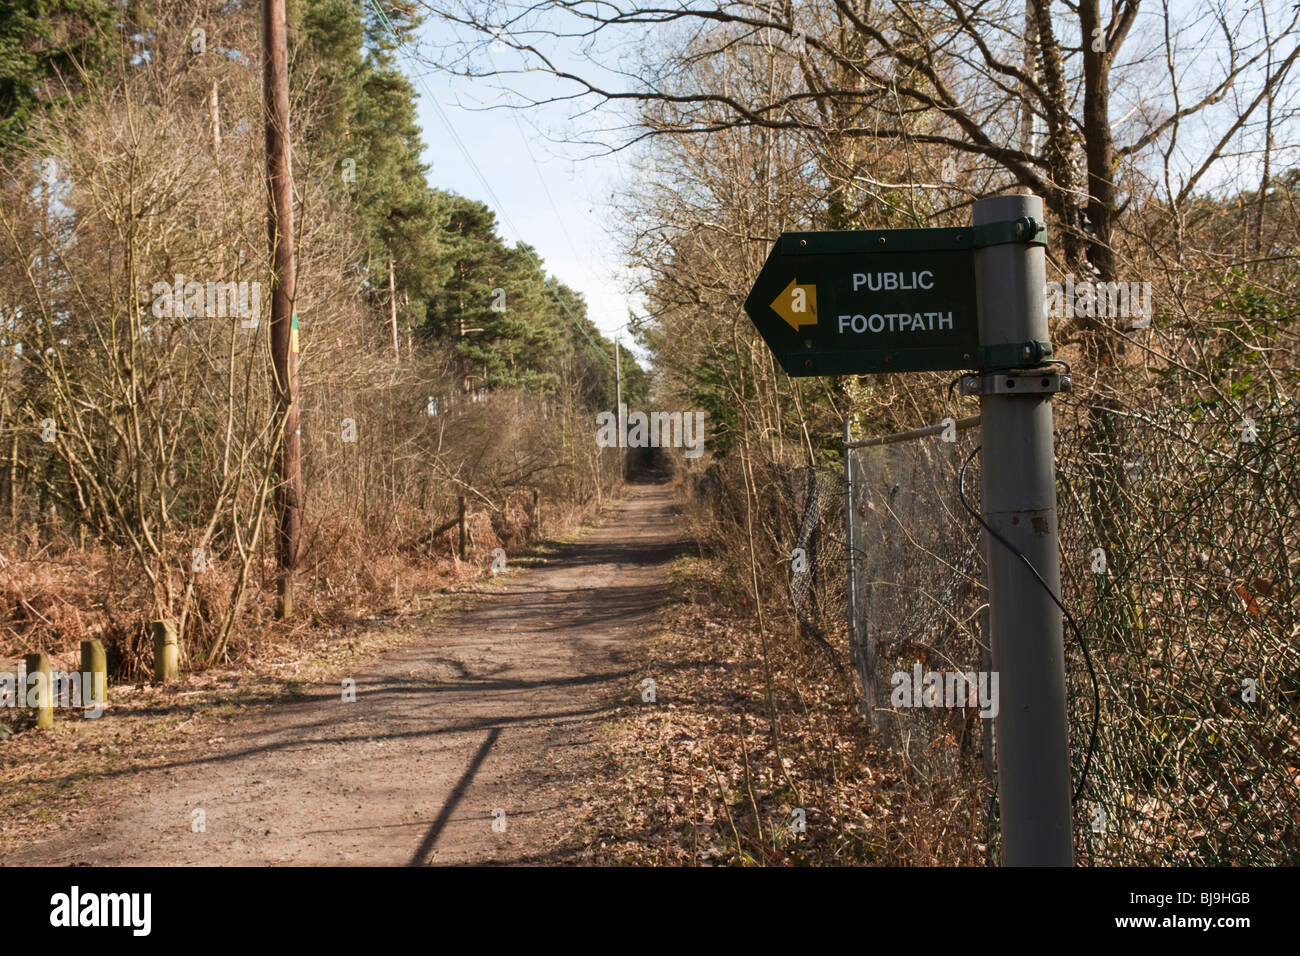 Public Footpath sign on The Devil's Highway, Crowthorne Wood, Berkshire - Stock Image